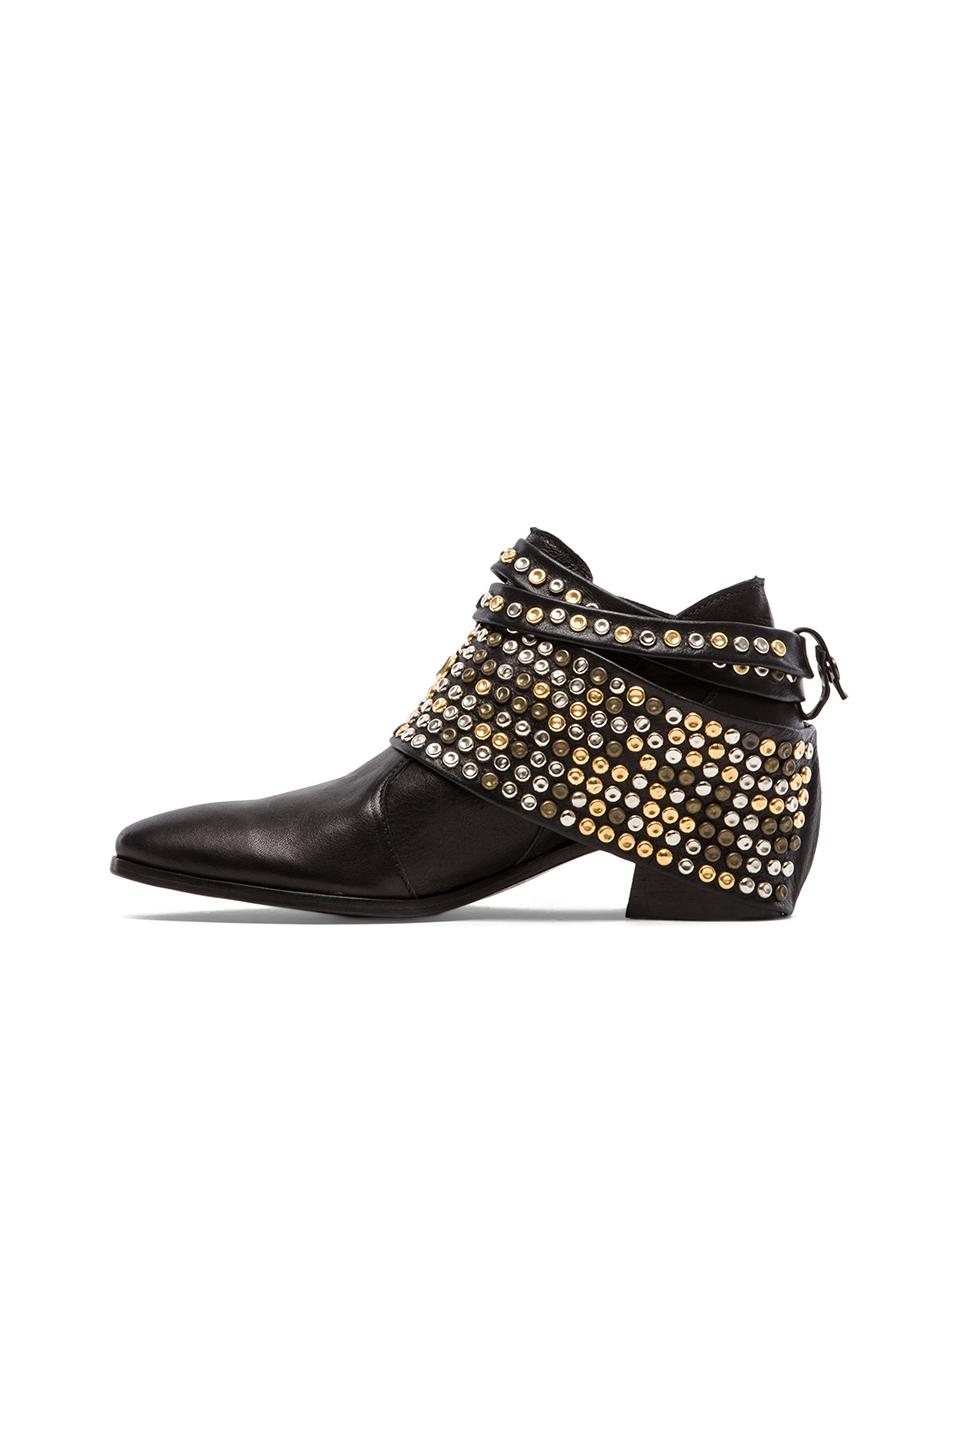 MODERN VICE COLLECTION Chloe Studded Removable Hardware Bootie in Black | REVOLVE